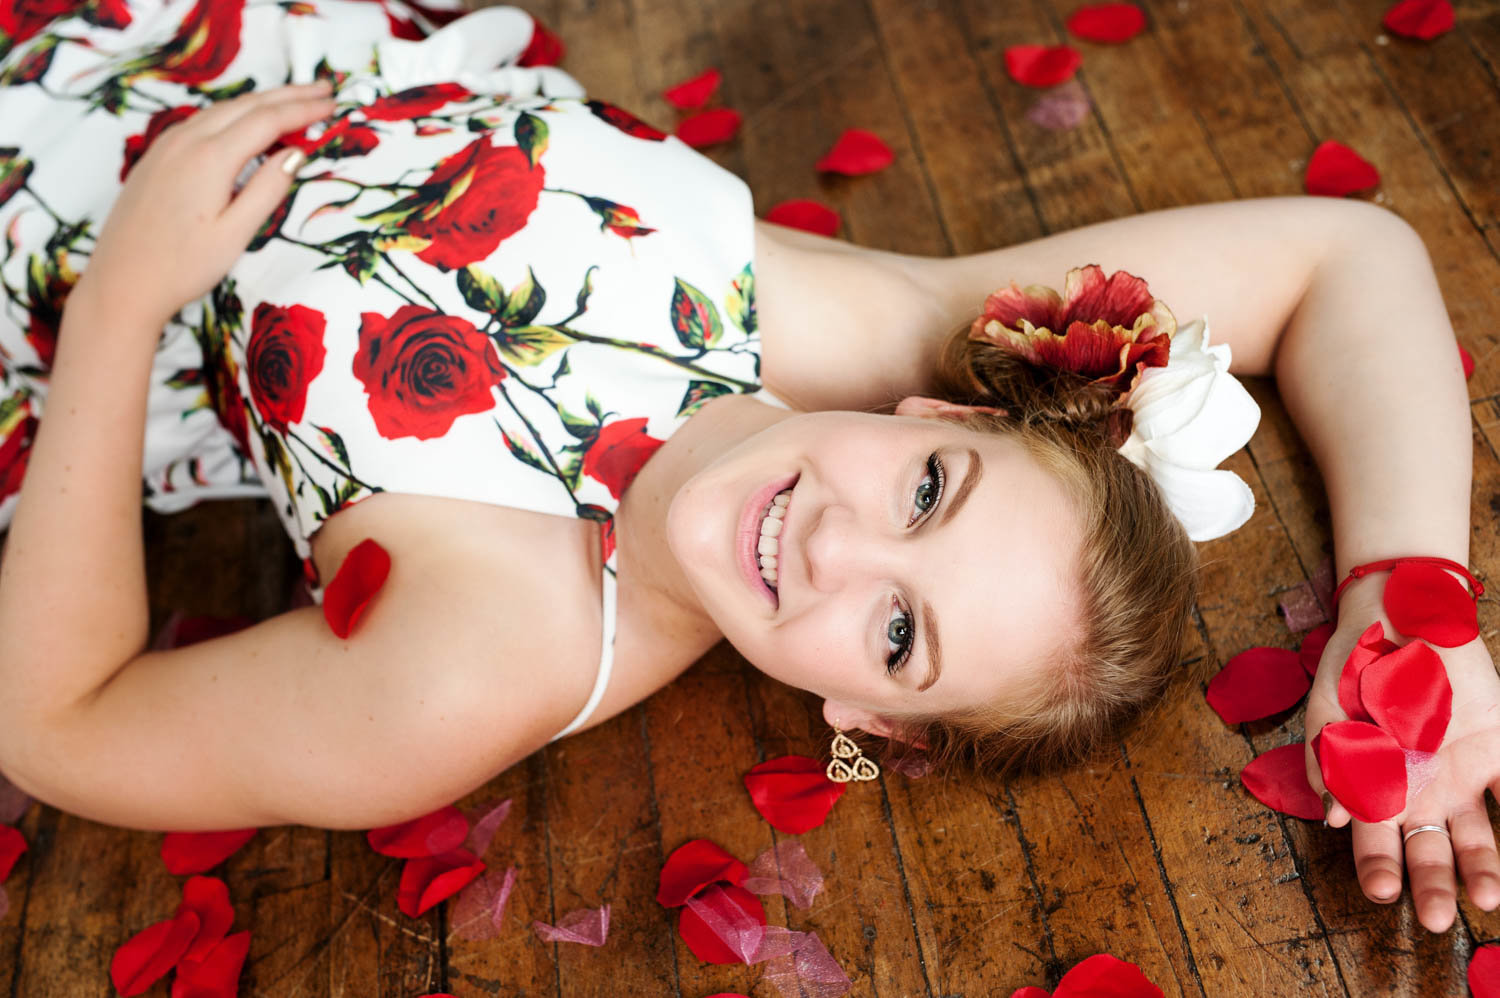 Studio senior picture of girl with flower petals